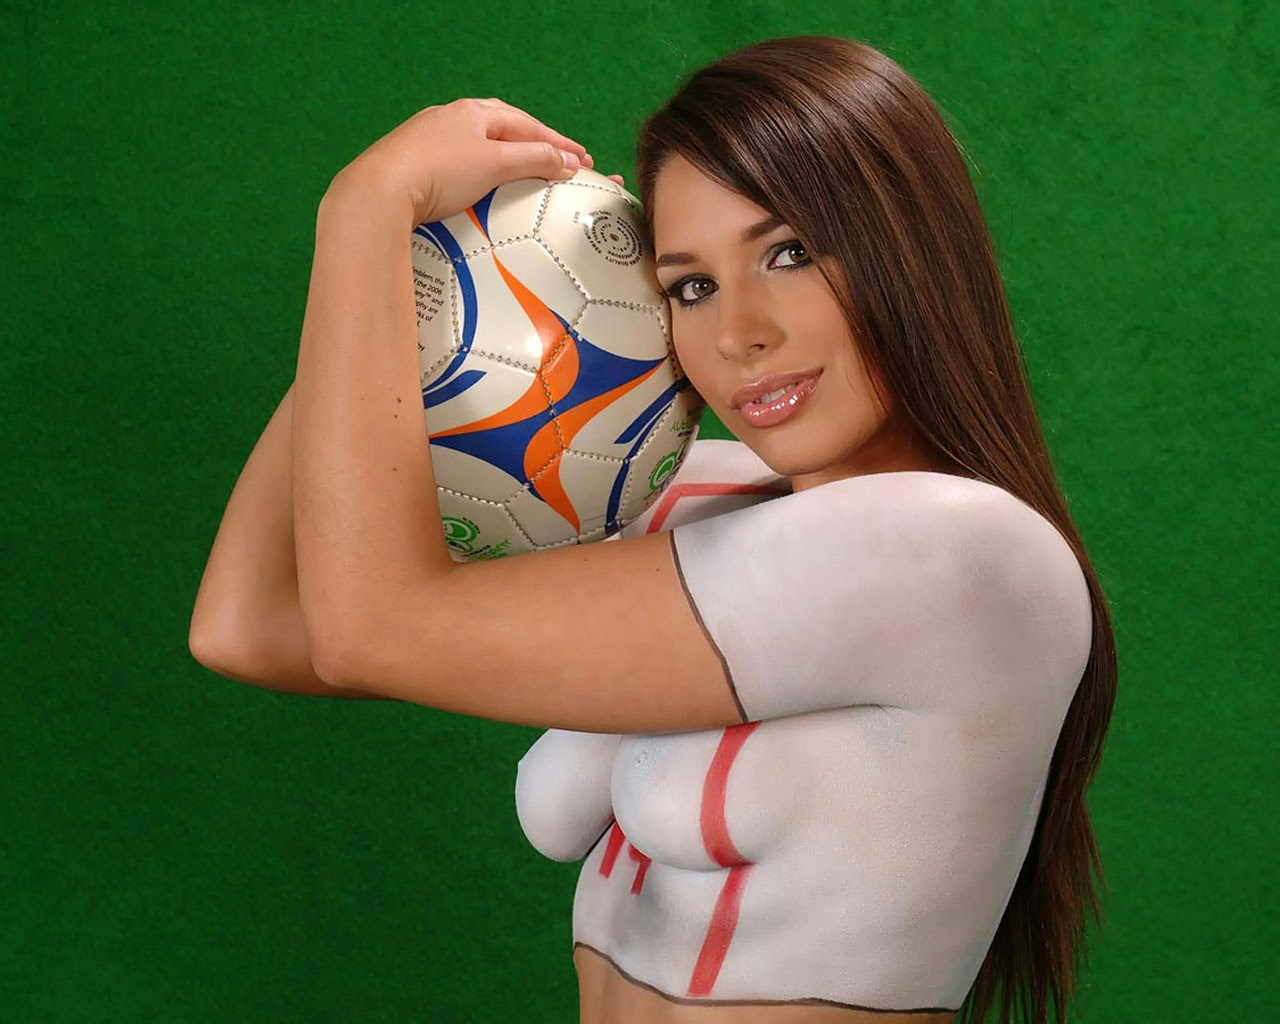 Nude fifa world cup